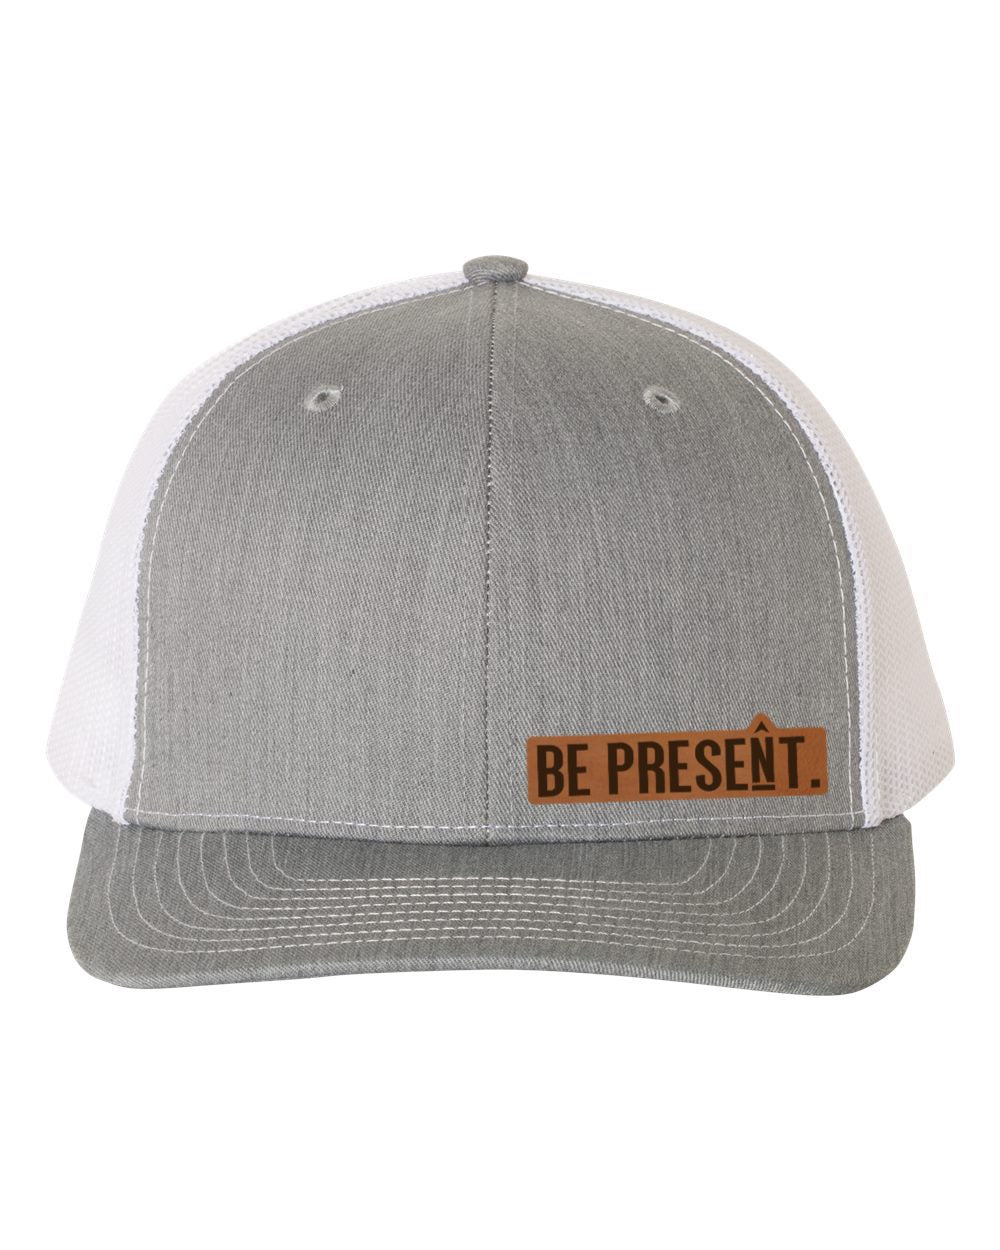 BE PRESENT. Leather Patch Hat